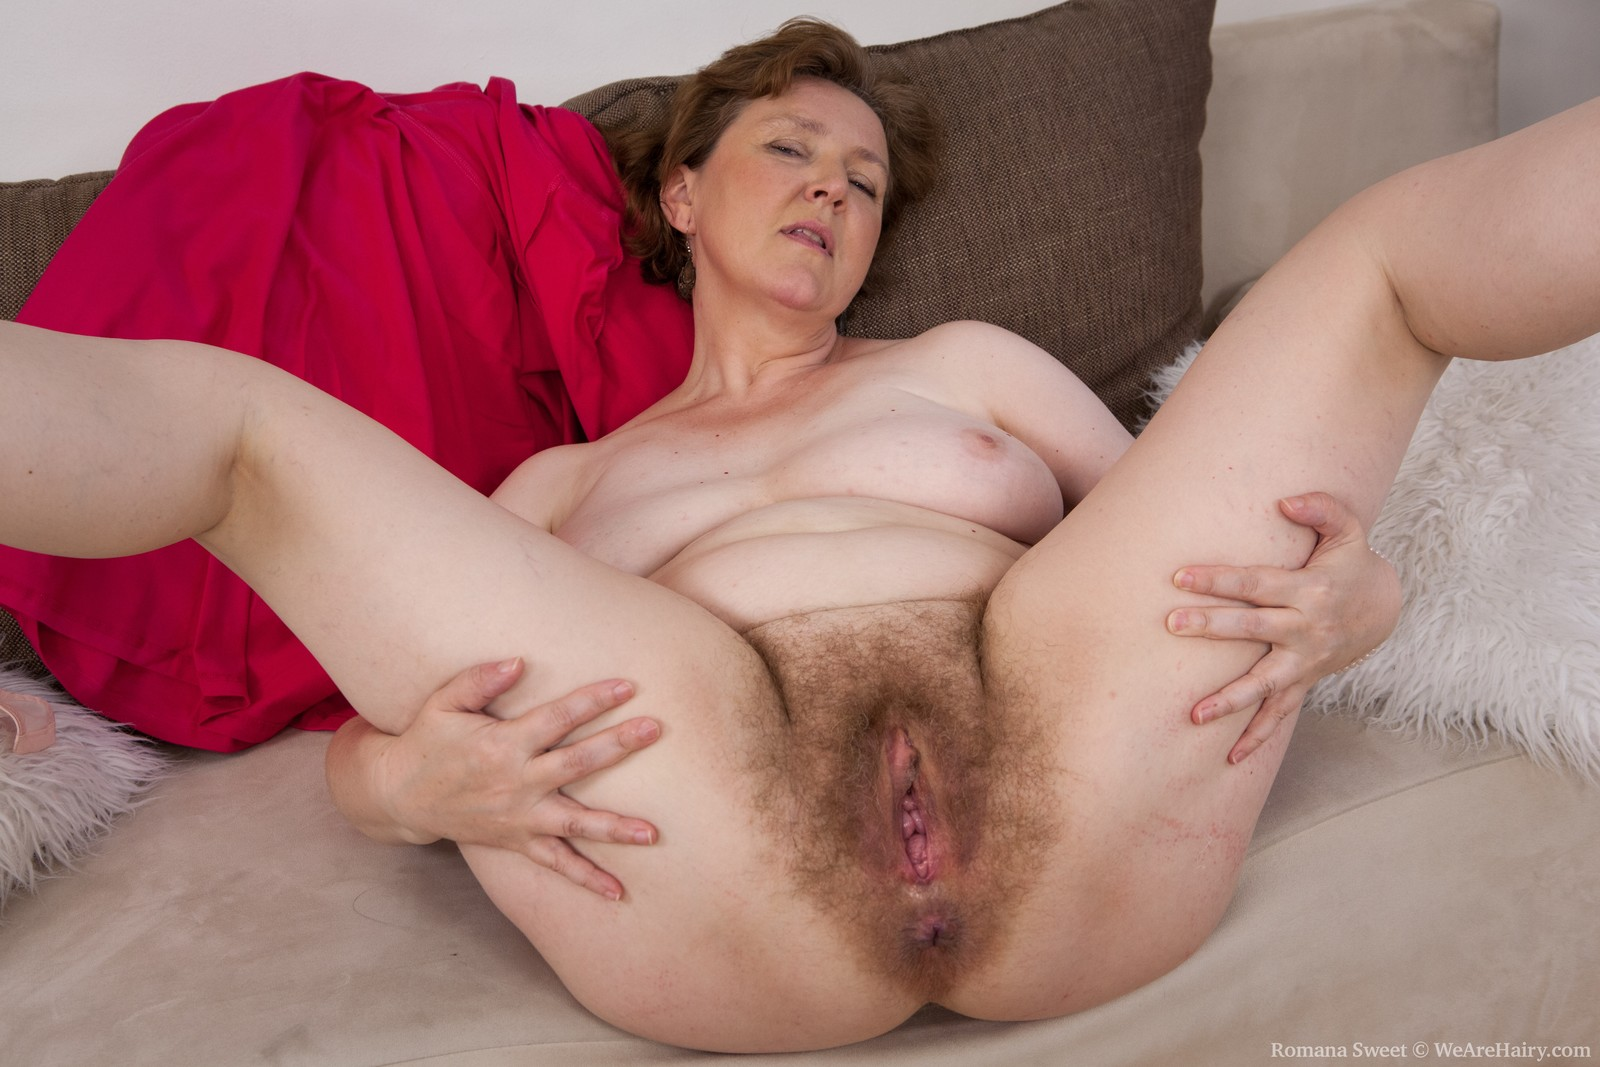 Xxx Pics Of Mature Women With Hairy Pussies 19